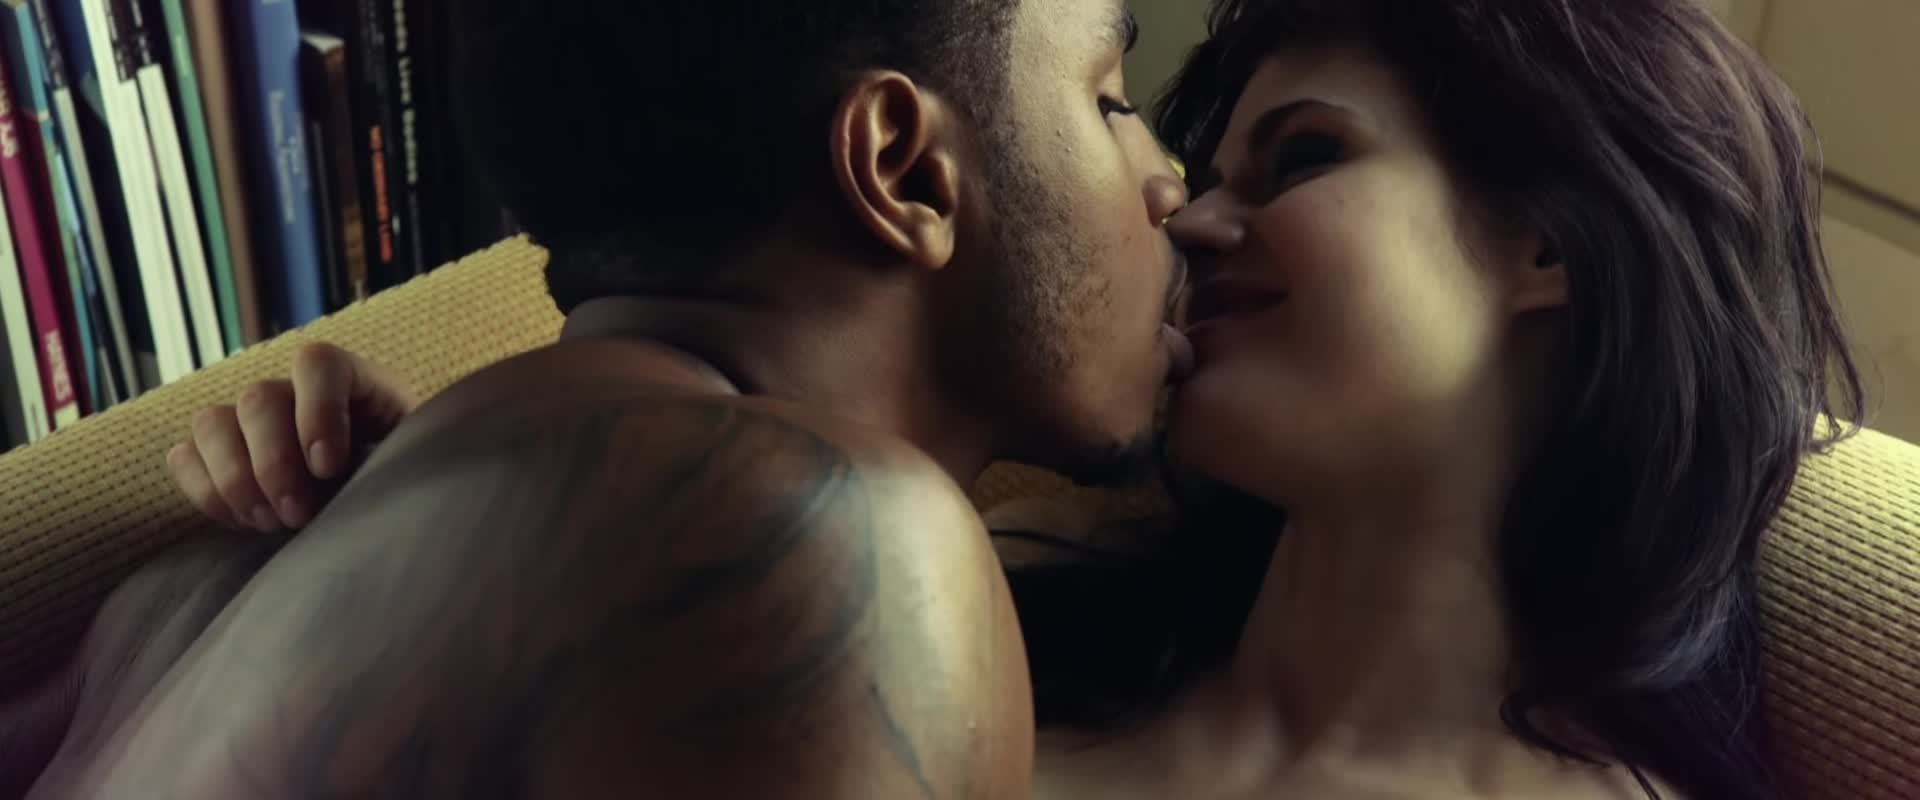 alexandra daddario, make out, making out, texas chainsaw 3d, trey songz, Alexandra Daddario make out scene in Texas Chainsaw 3D GIFs